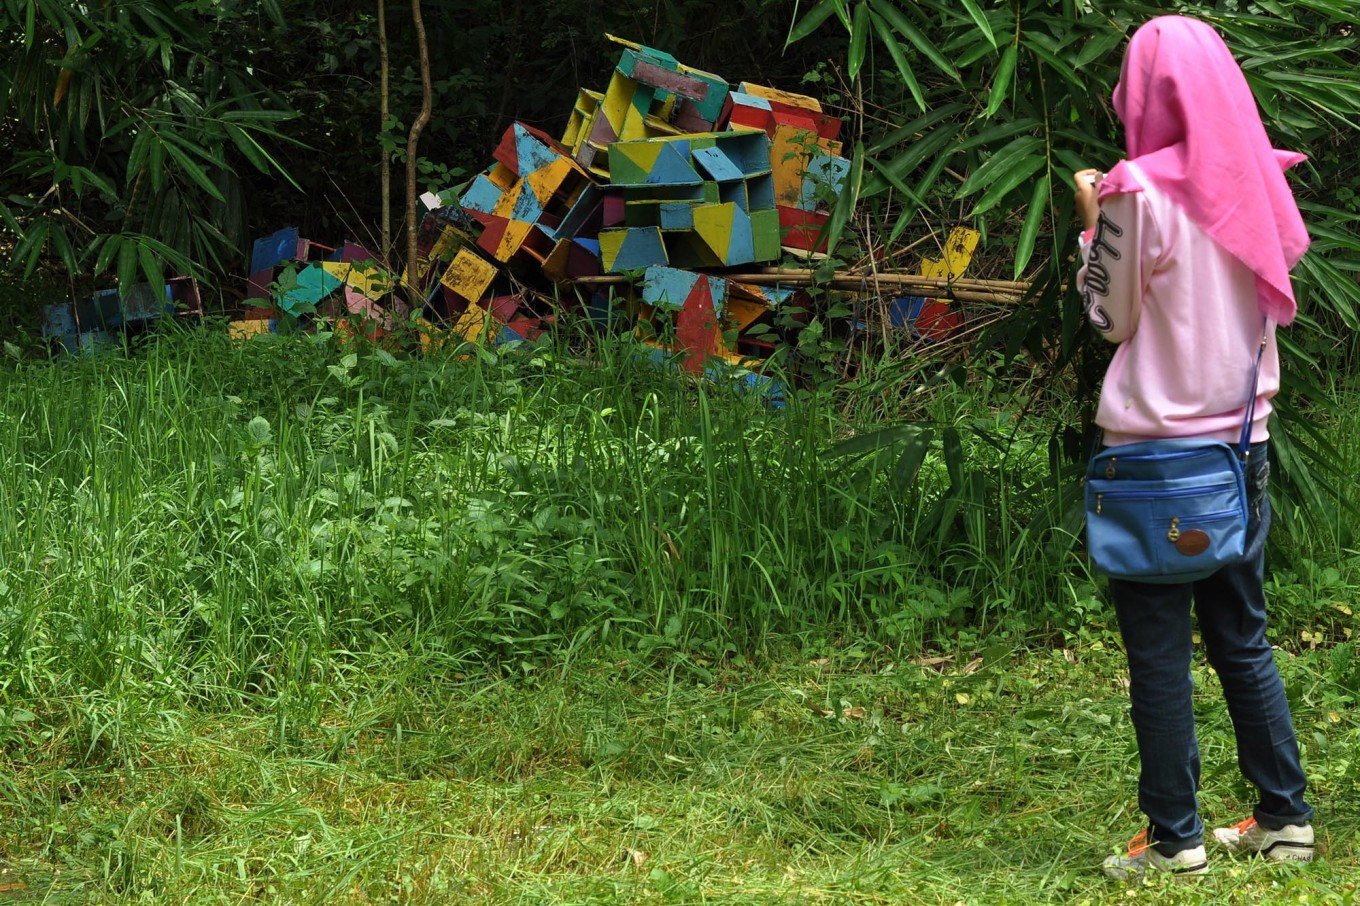 A girl photographs an art installation in the backyard of the Mugi Dance studio during the festival. JP/Magnus Hendratmo